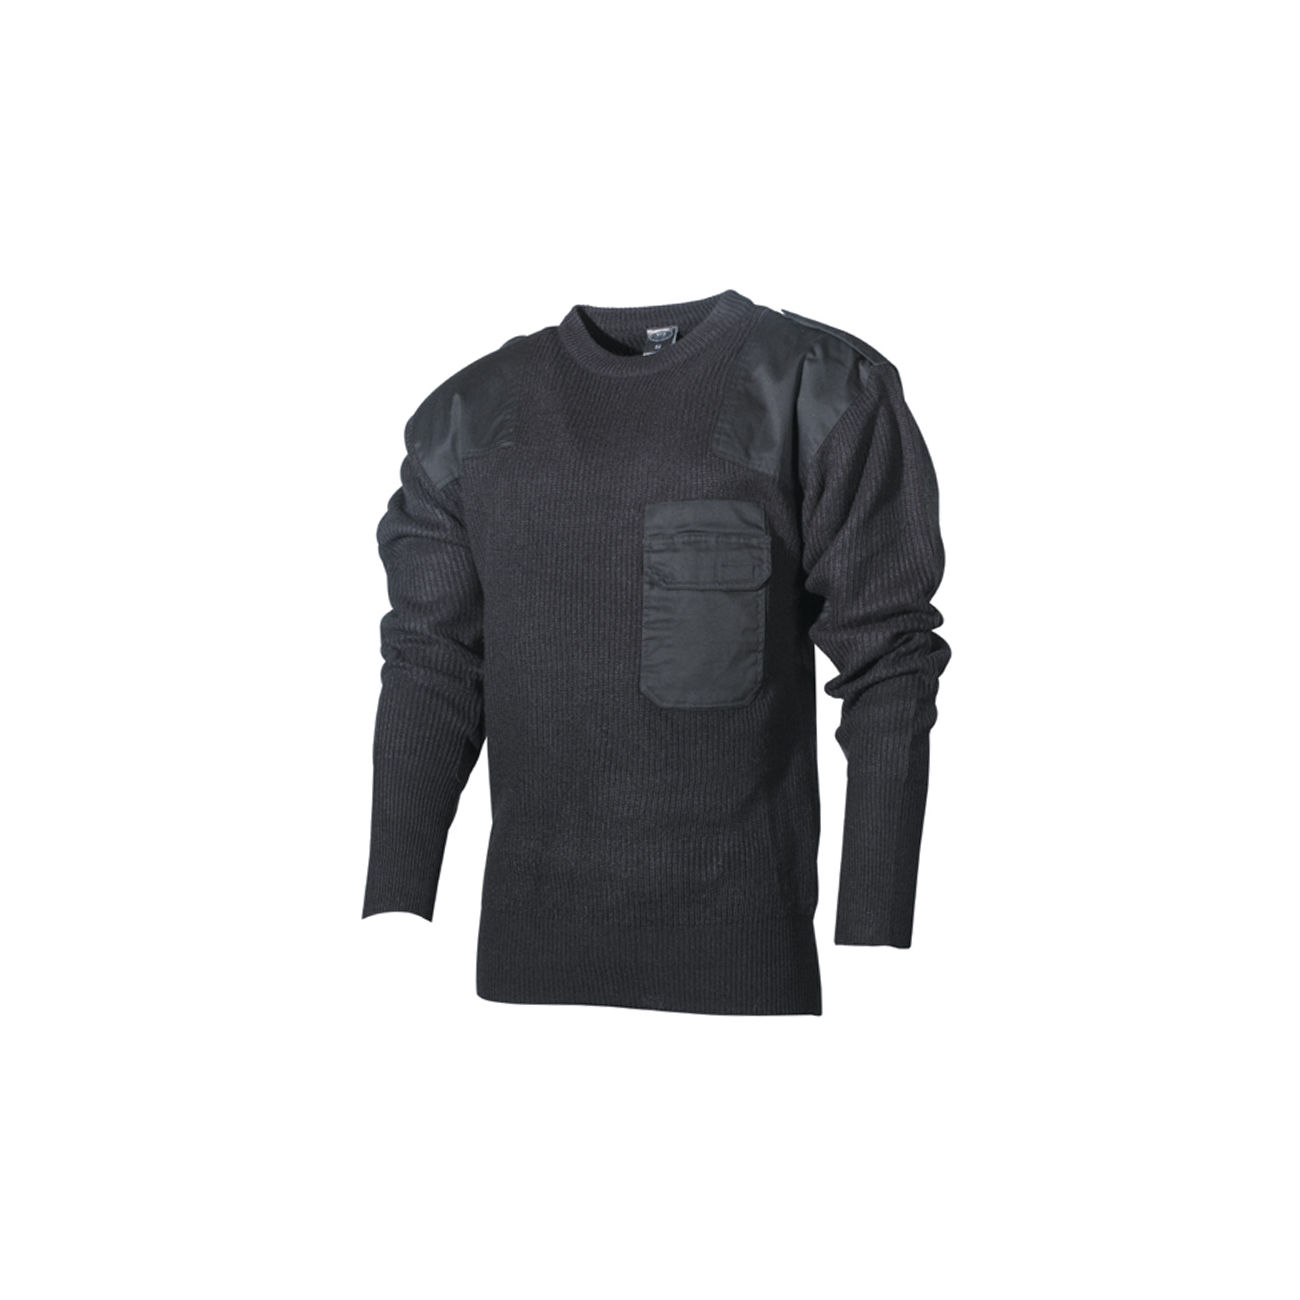 Mil-Tec Pullover BW-Style schwarz 0